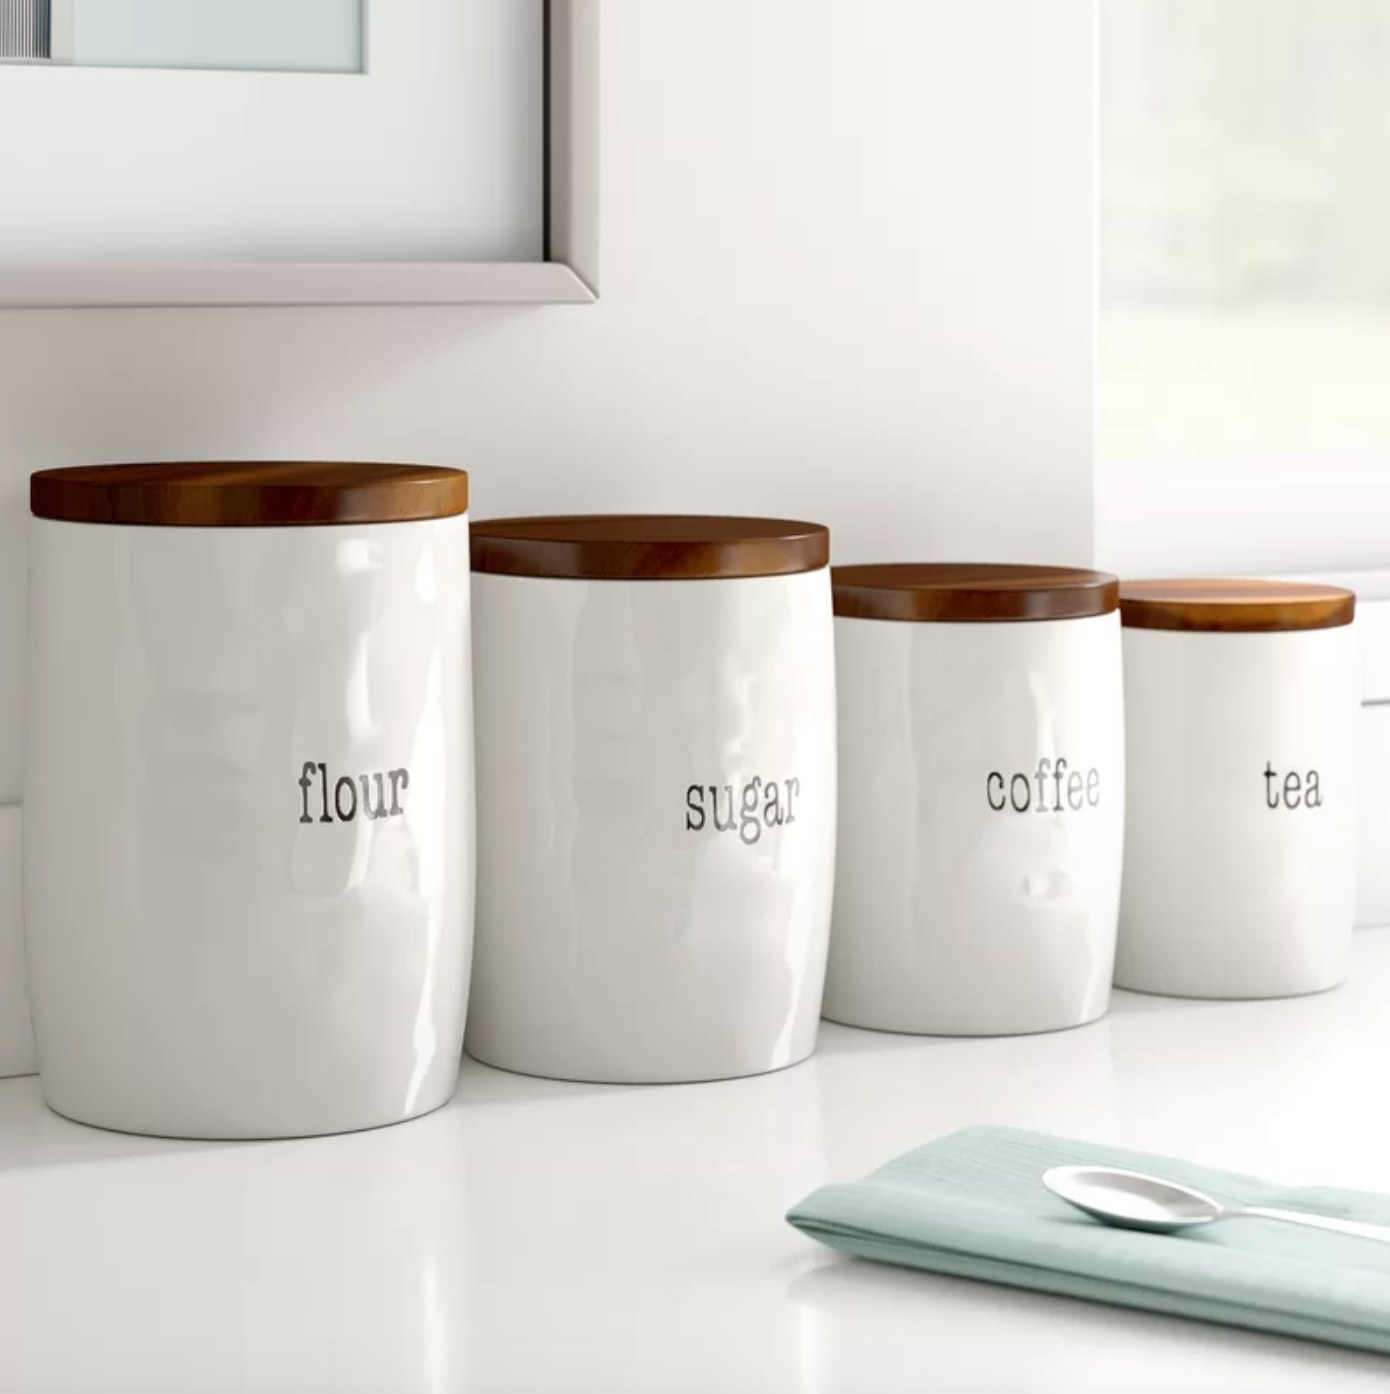 The four-piece kitchen canister in white with dark wood lids